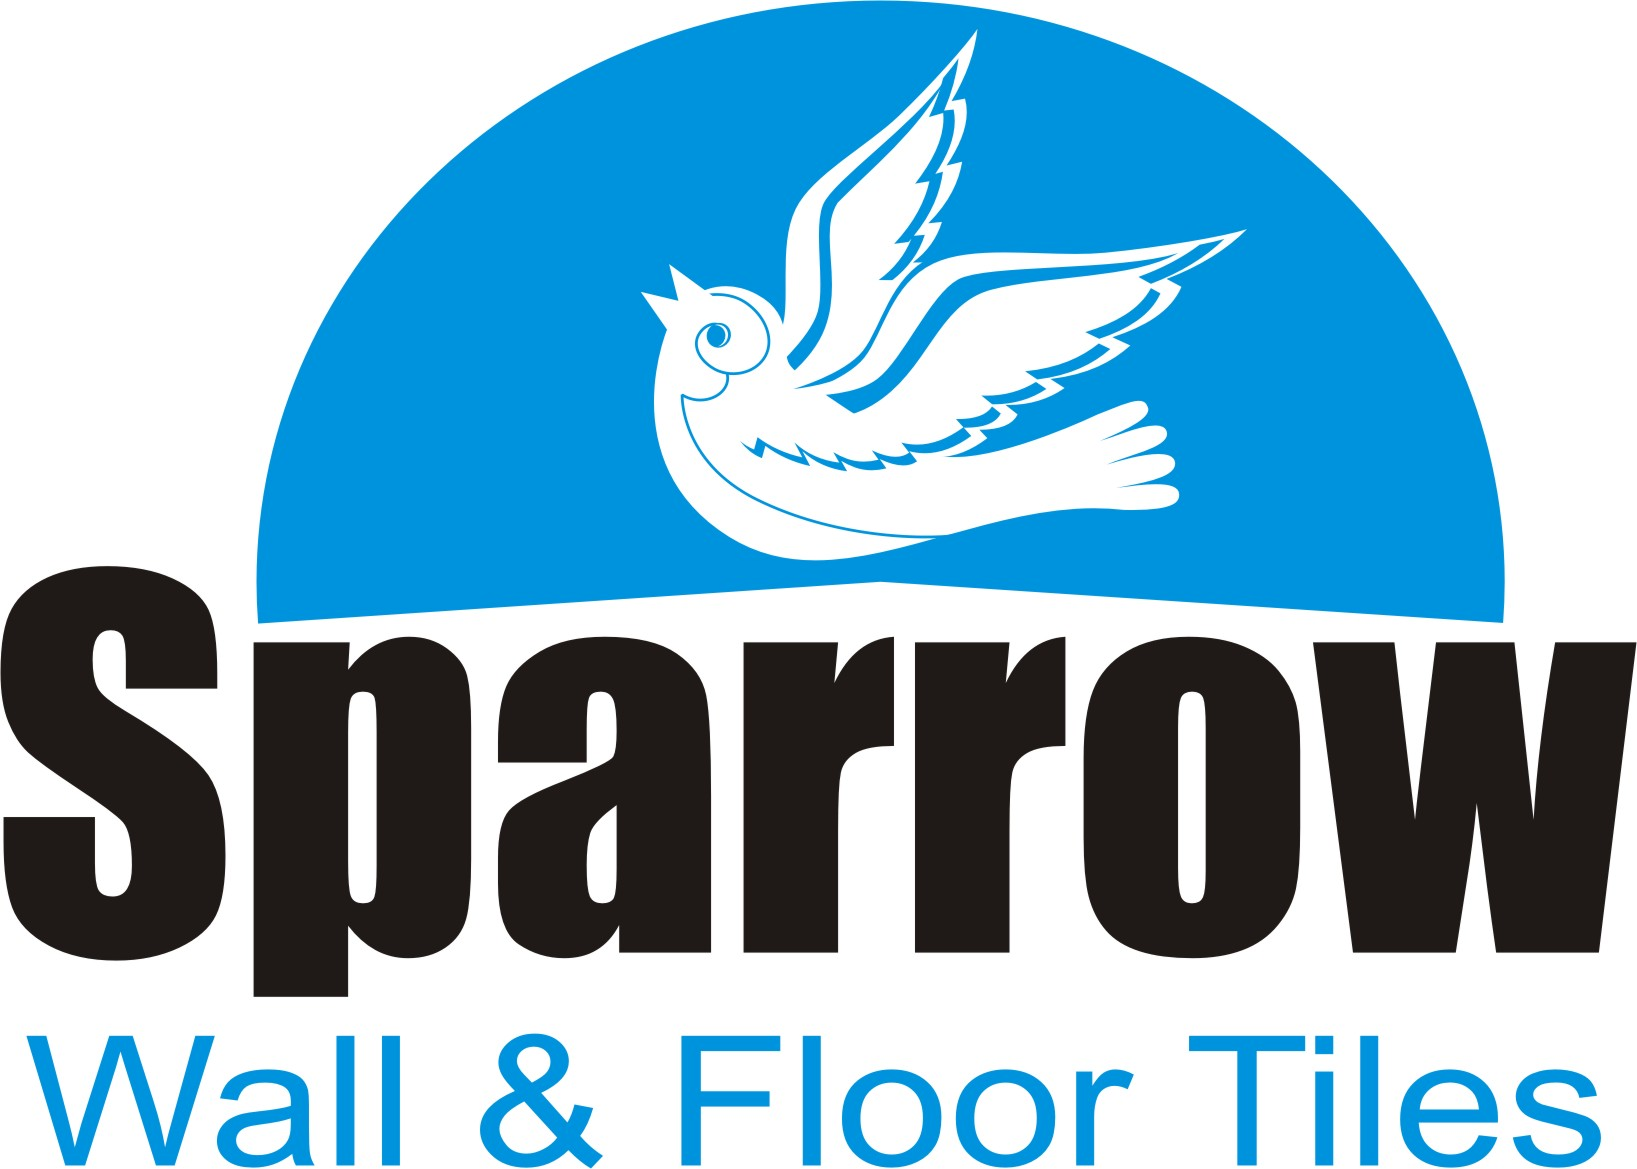 Sparrow Wall & Floor Tiles